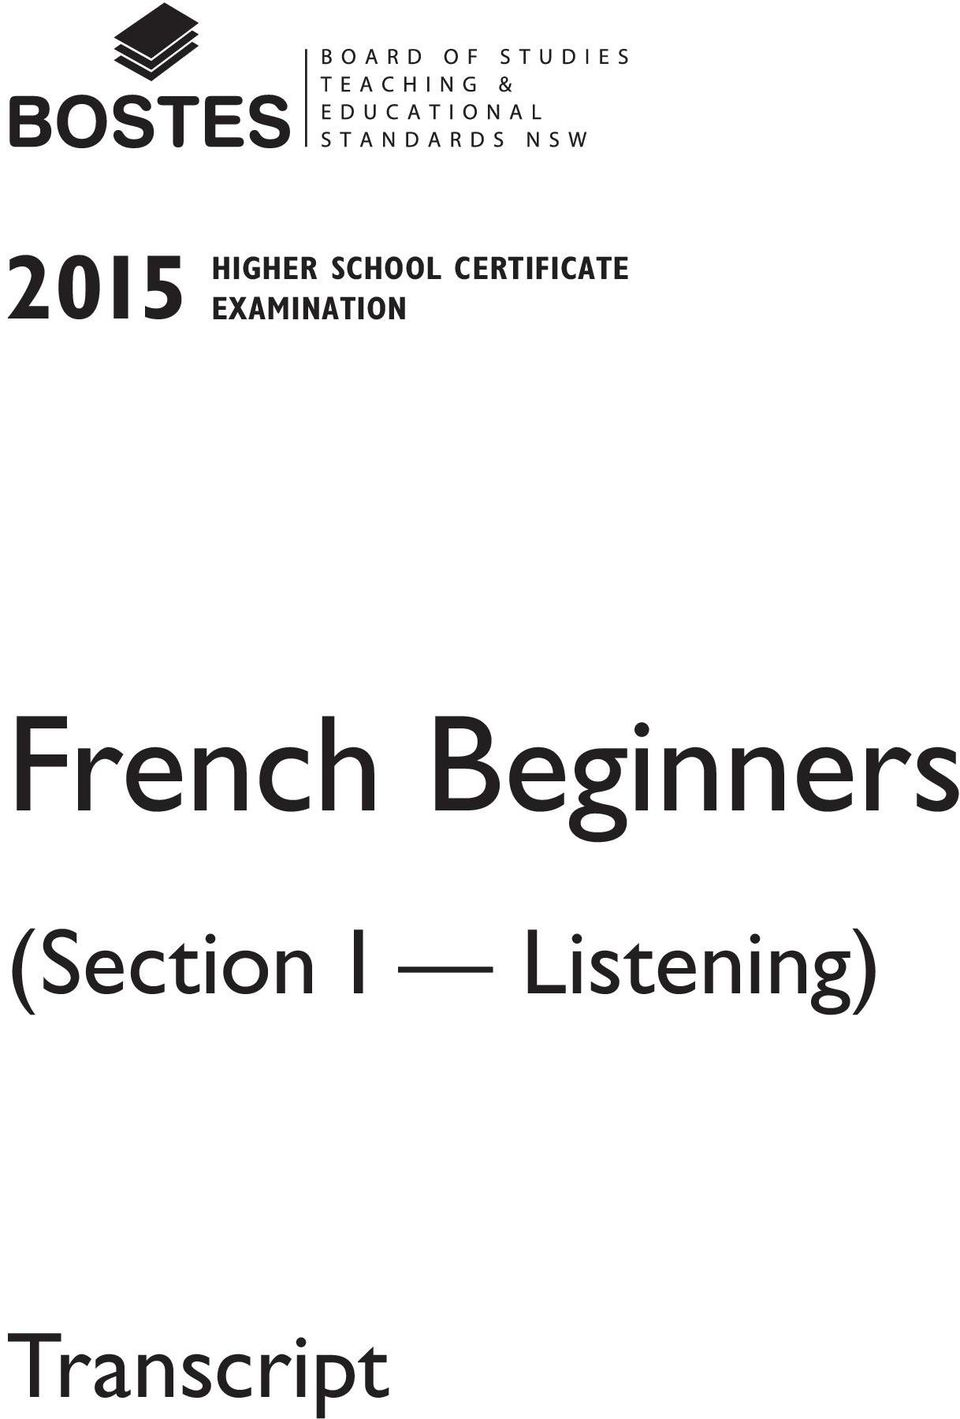 French Beginners (